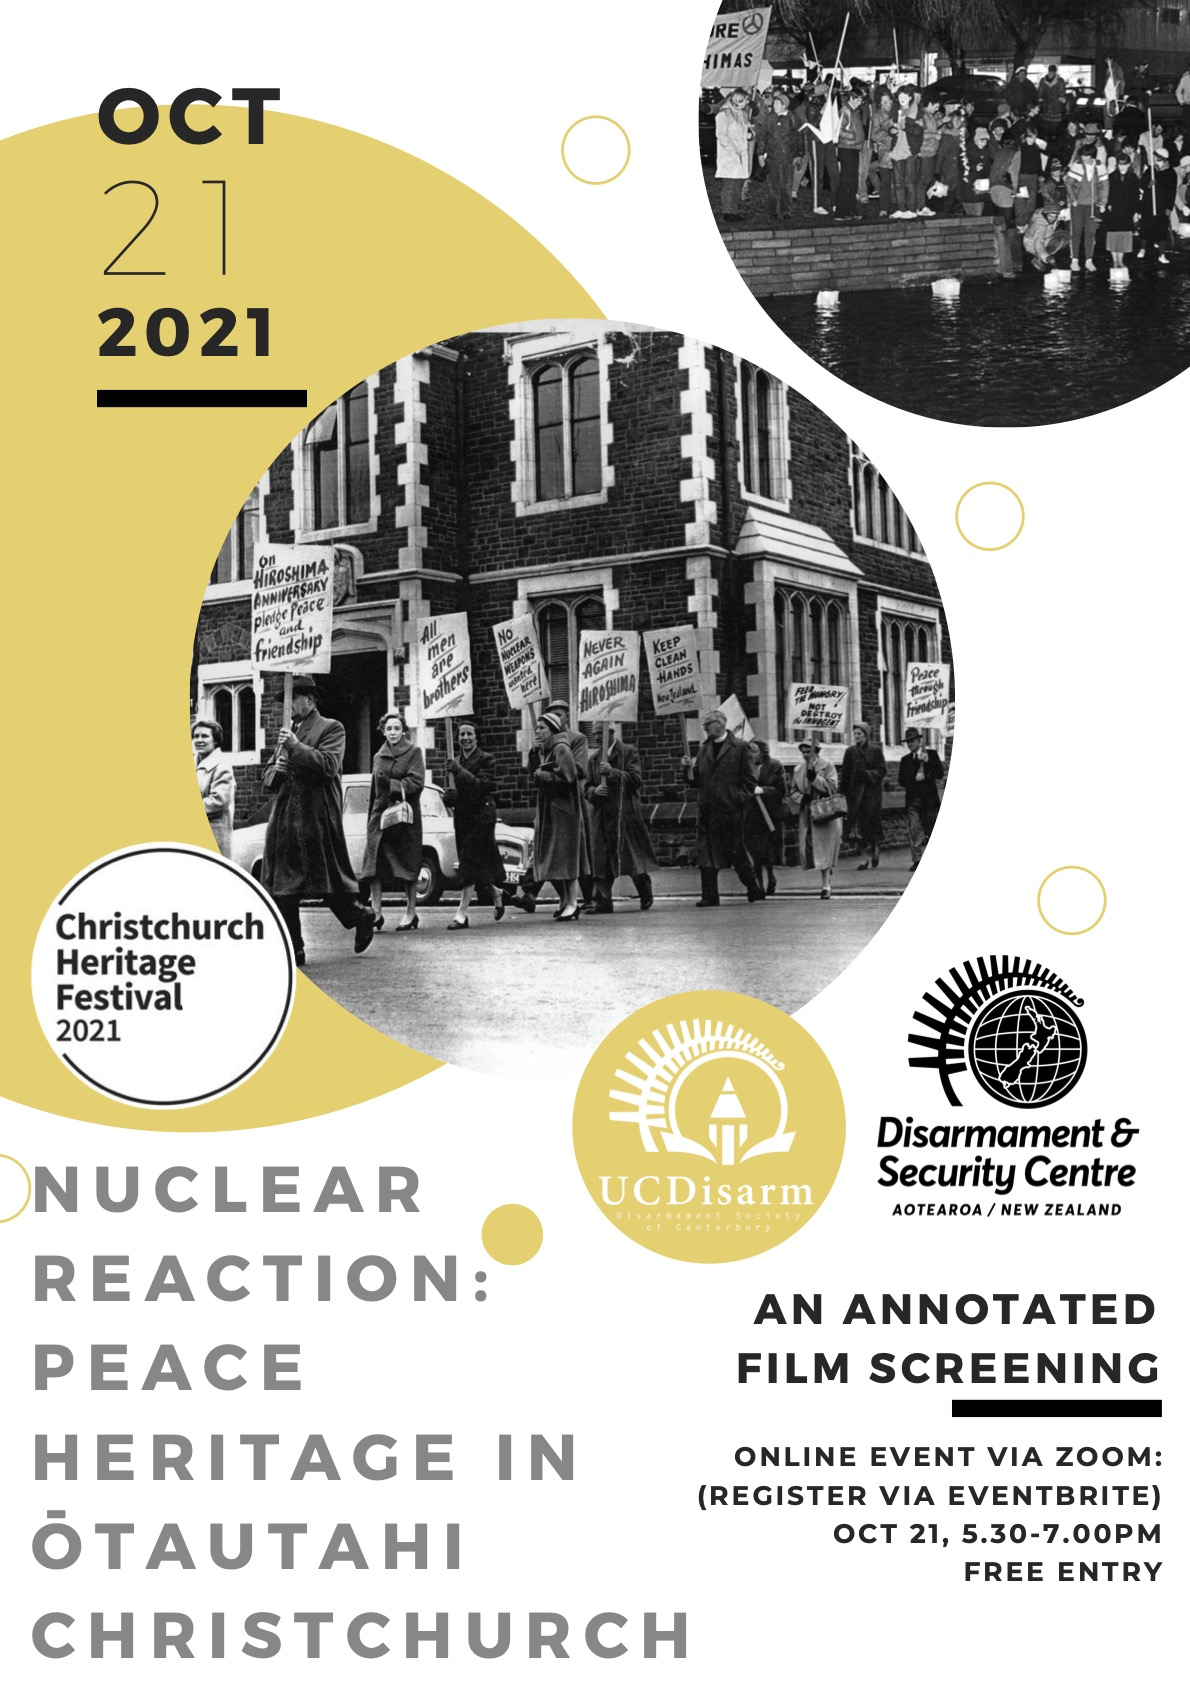 Nuclear Reaction: Peace Heritage in Ōtautahi Christchurch